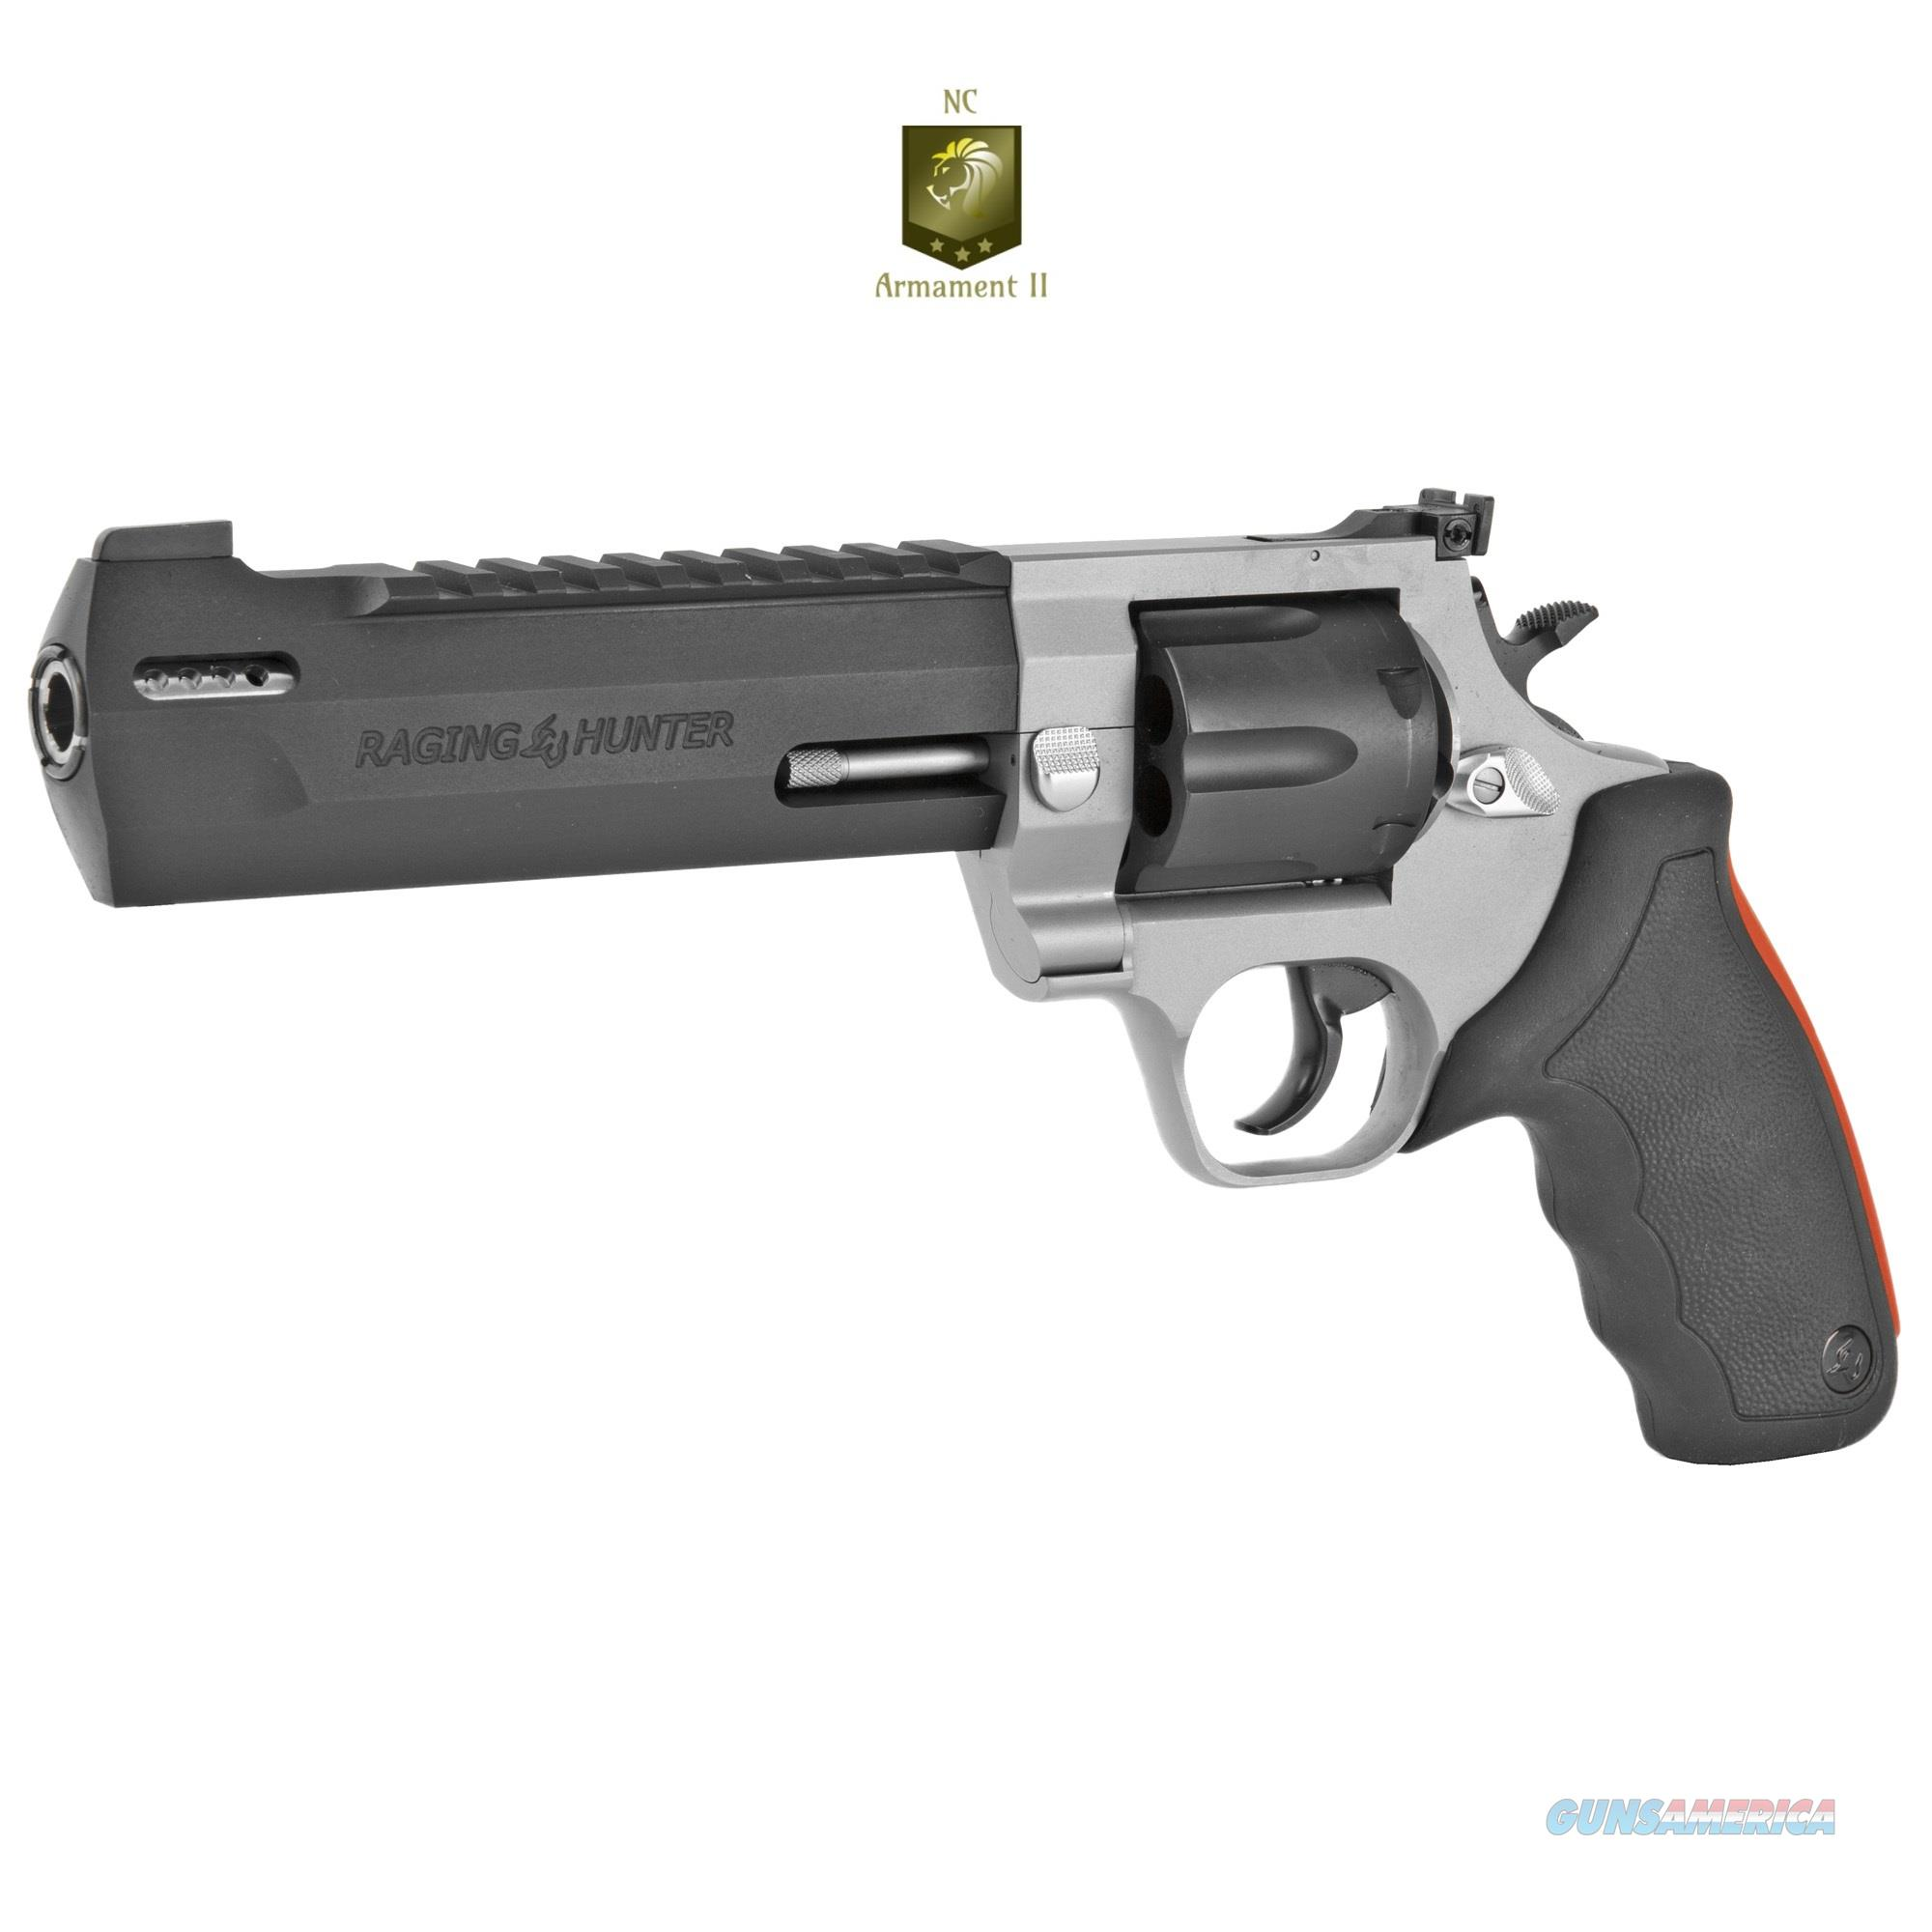 Taurus Raging Hunter 44mag 6.75 Inch Barrel Two-Tone  Guns > Pistols > Taurus Pistols > Revolvers